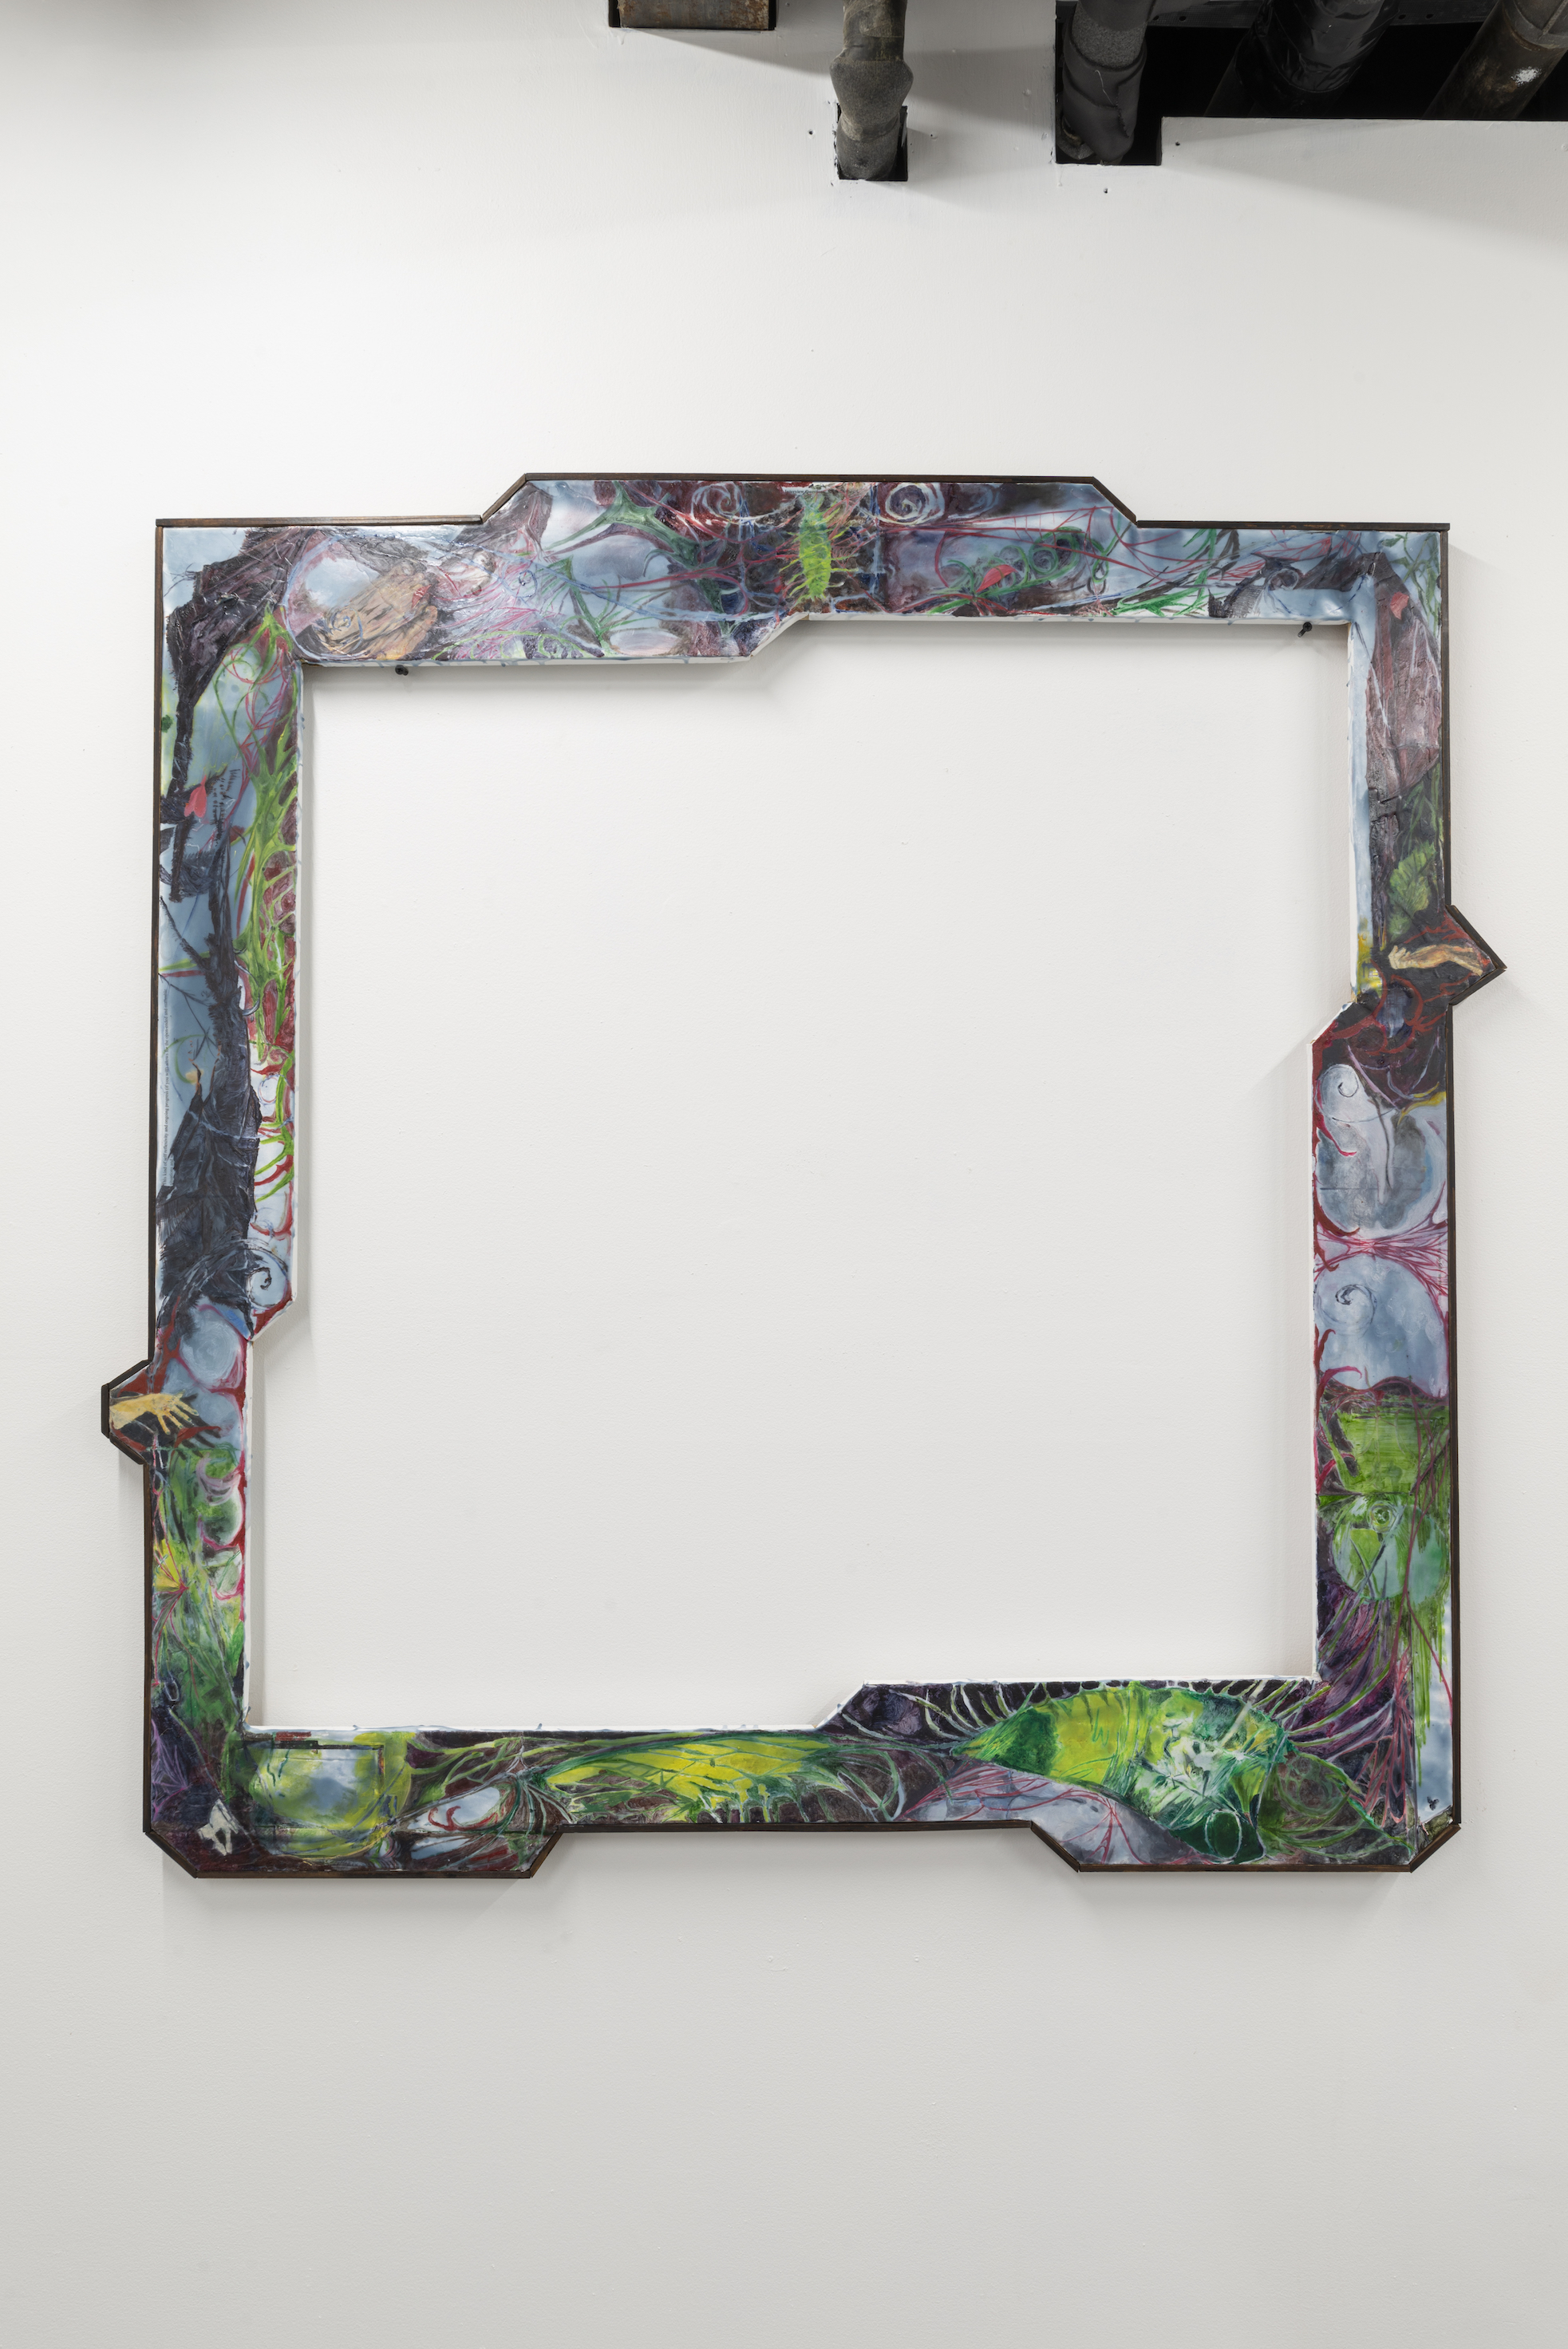 Nikholis Planck,  Interview Questions,  2019, Water soluble oil and collage on wax on canvas mounted to wood in walnut stained artist frame 46.75 x 46.5 inches